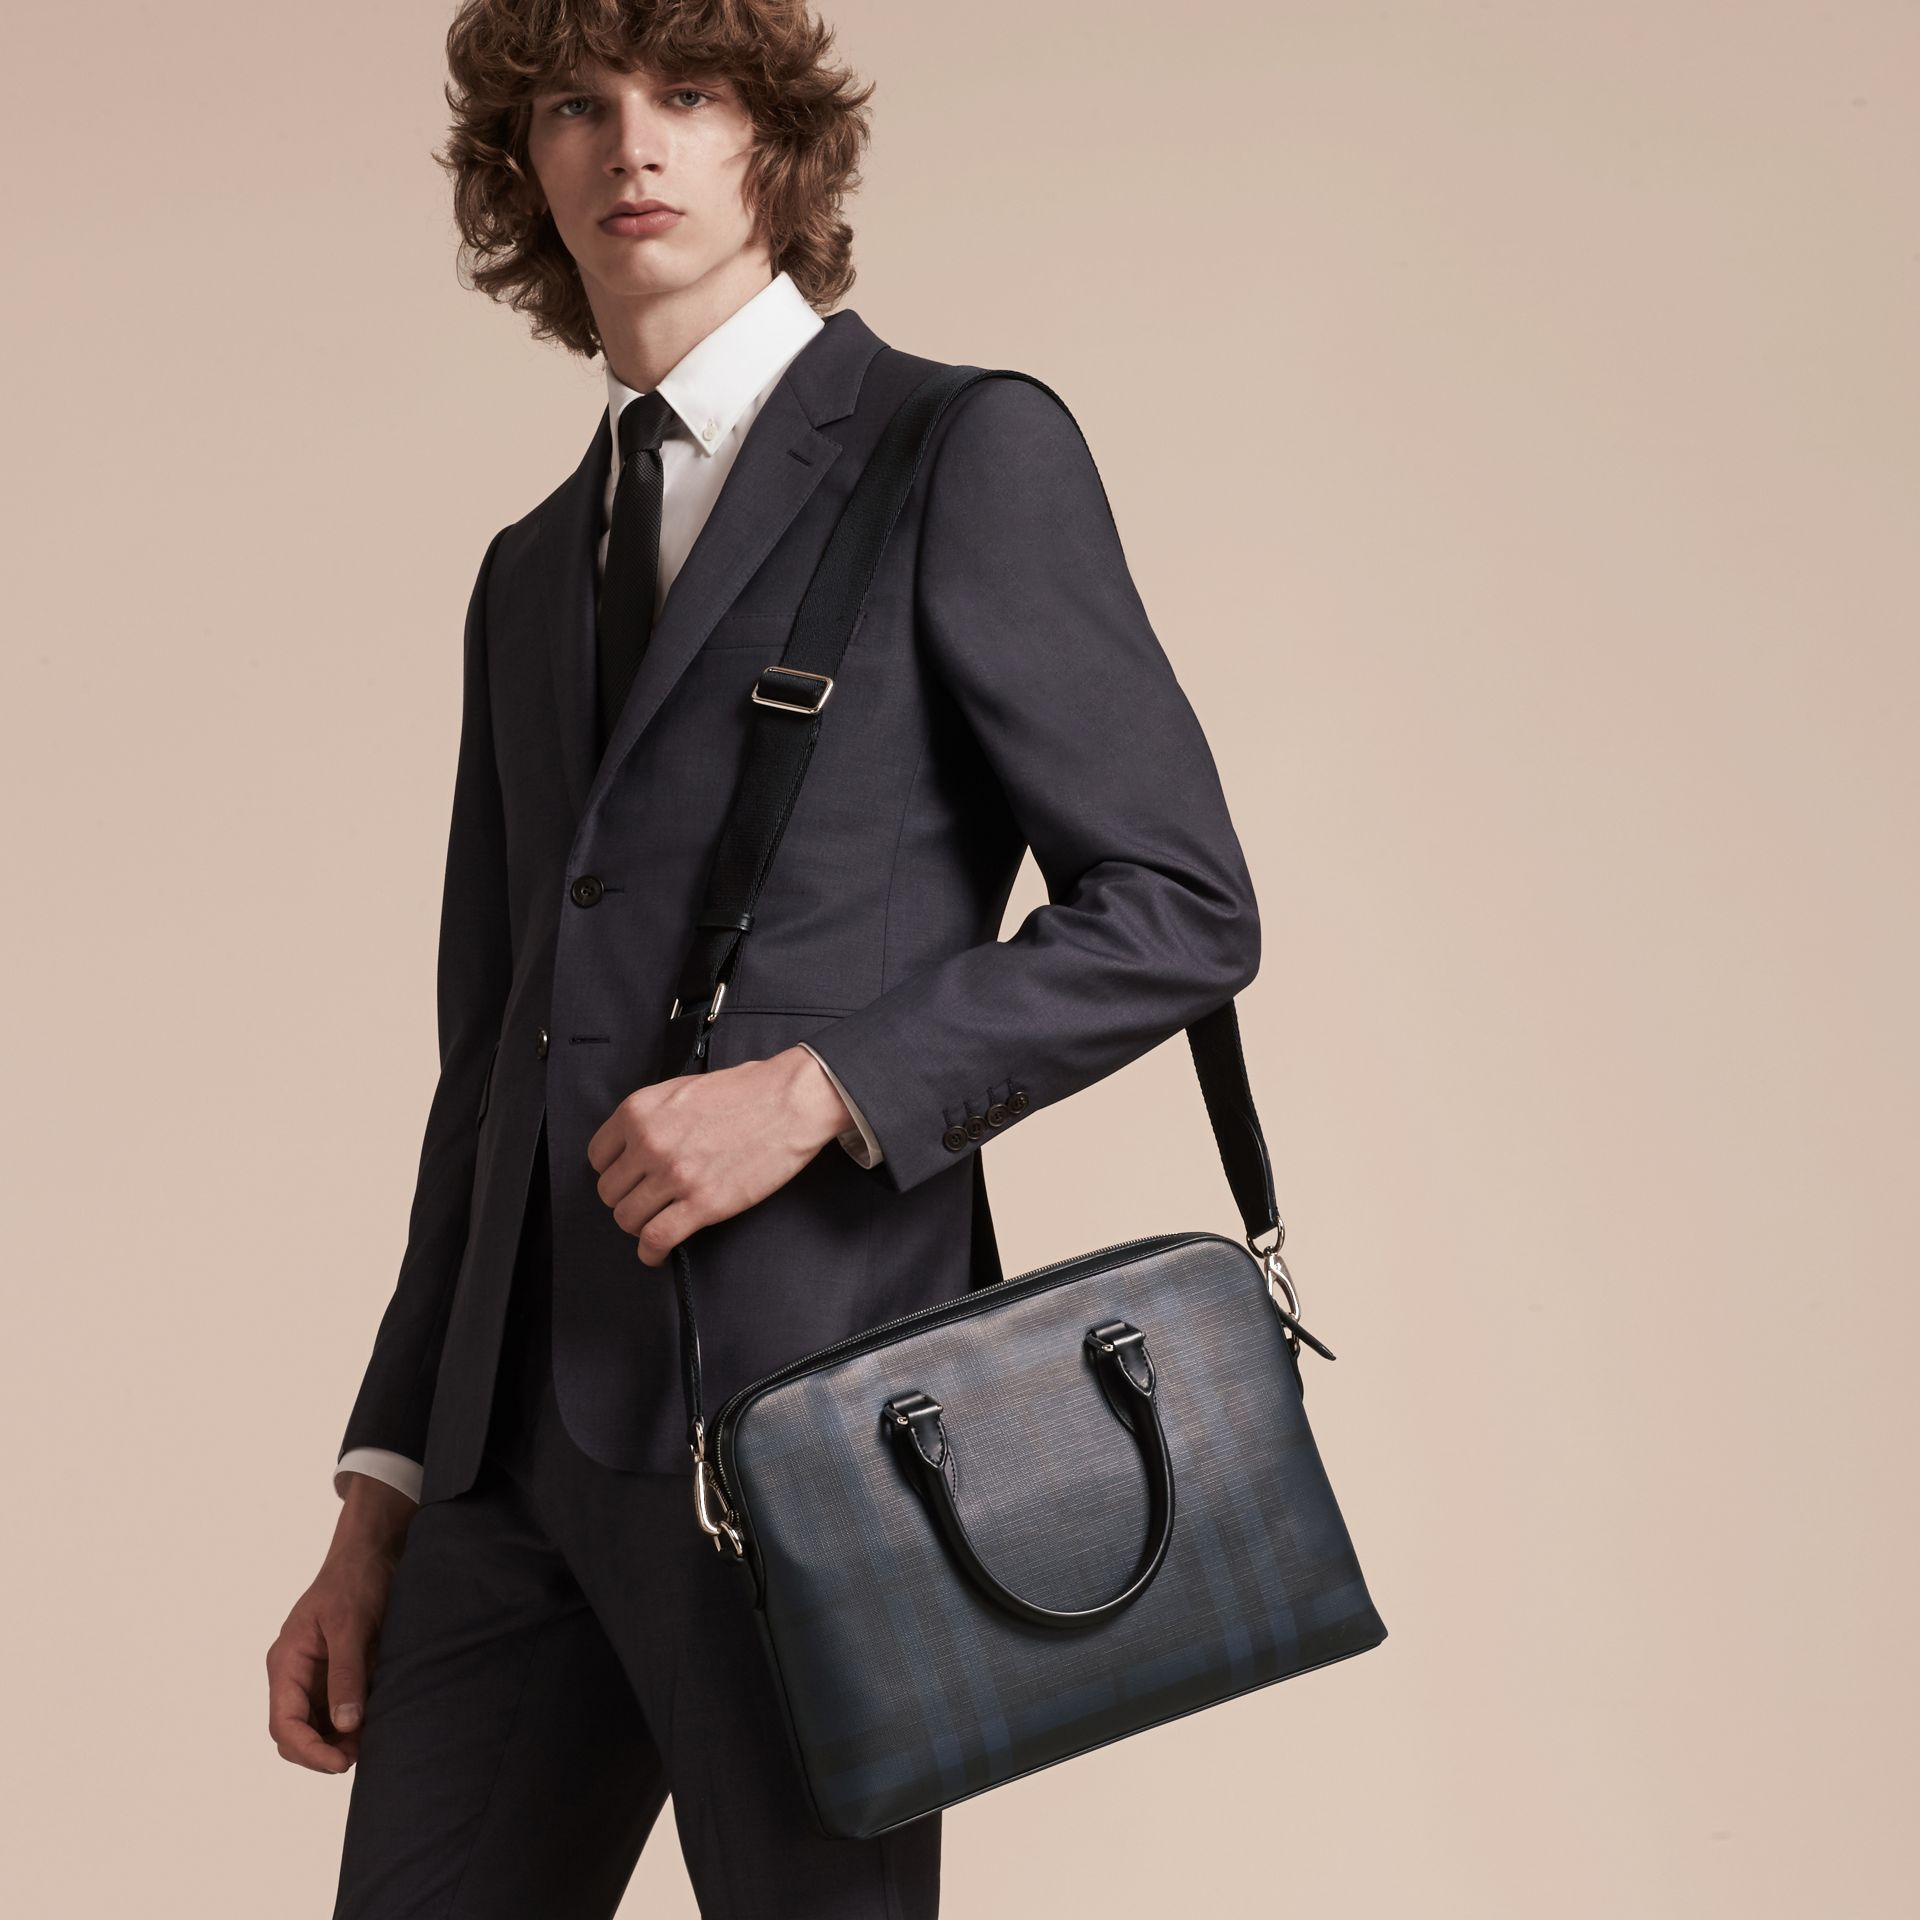 Sac The Barrow fin avec motif London check (Marine/noir) - photo de la galerie 4